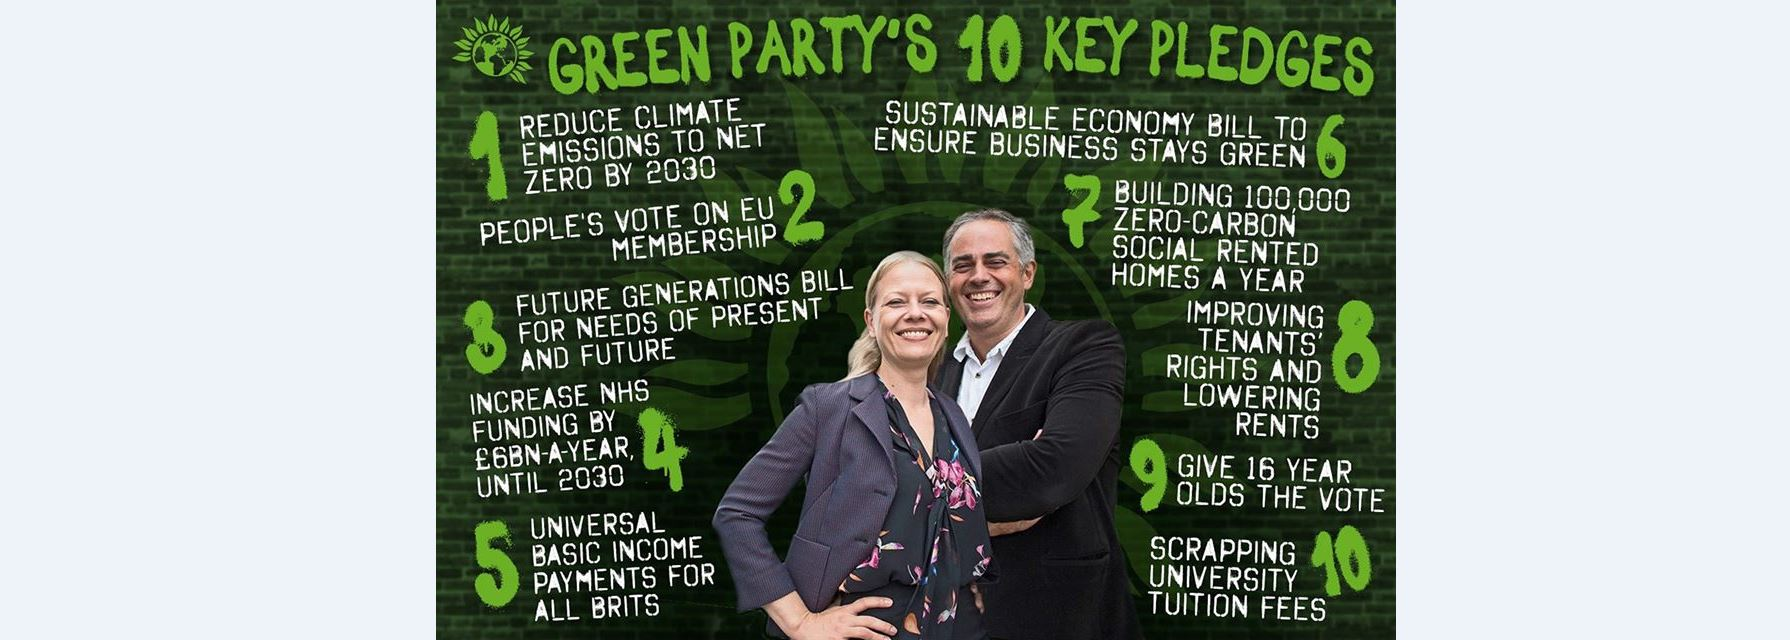 10 Key Pledges GE 2019